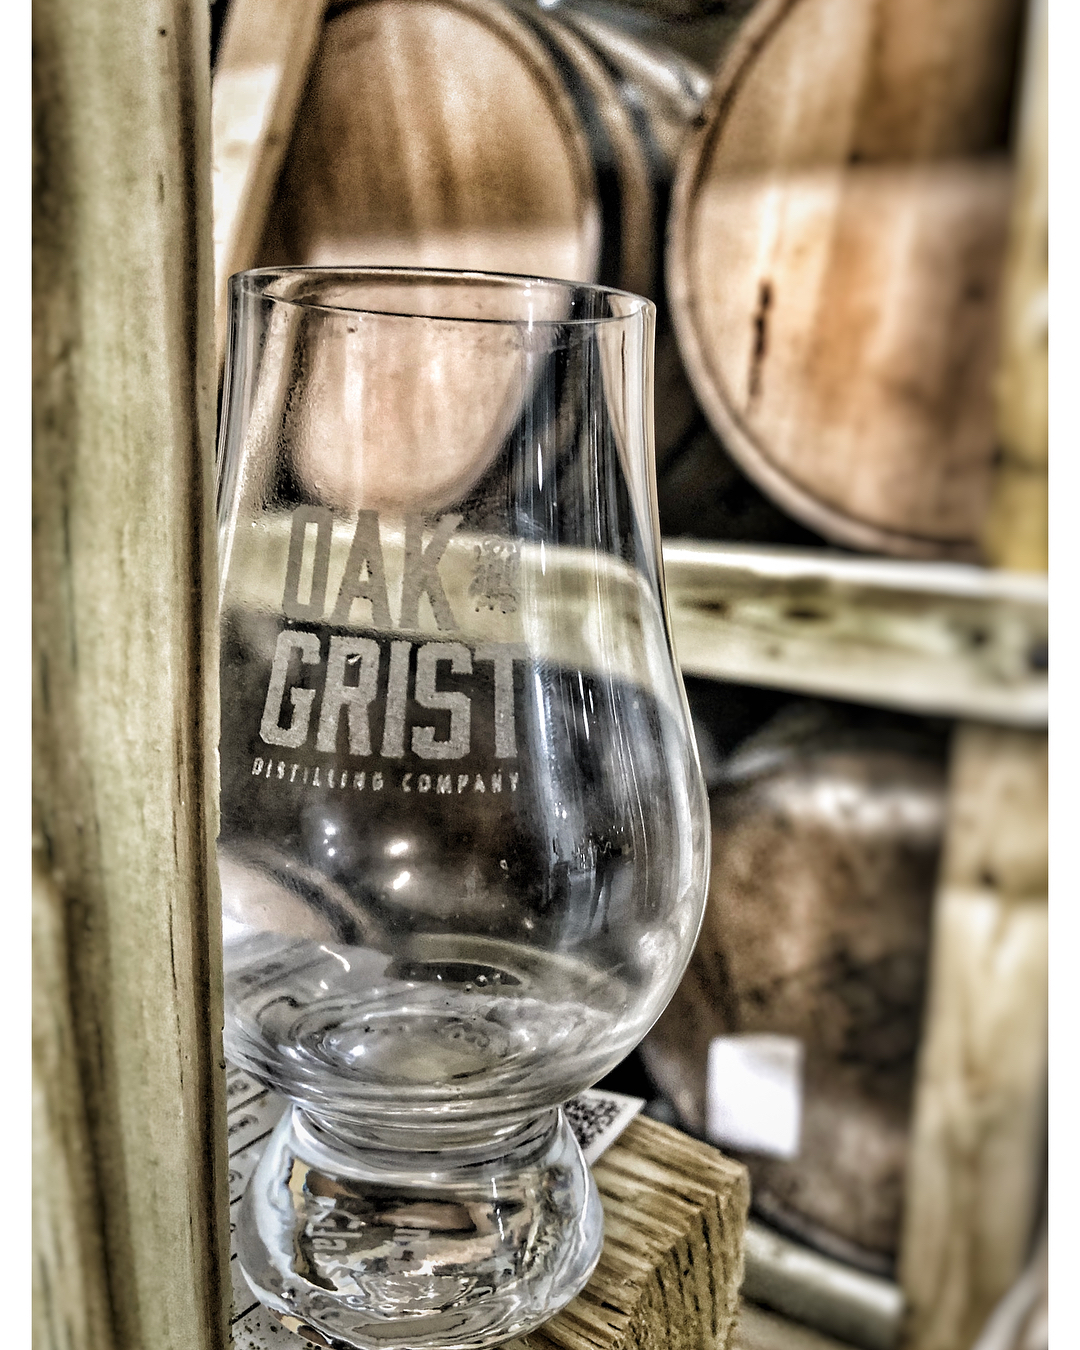 Asheville Breweries - Oak and Grist Distilling Company - Original Photo